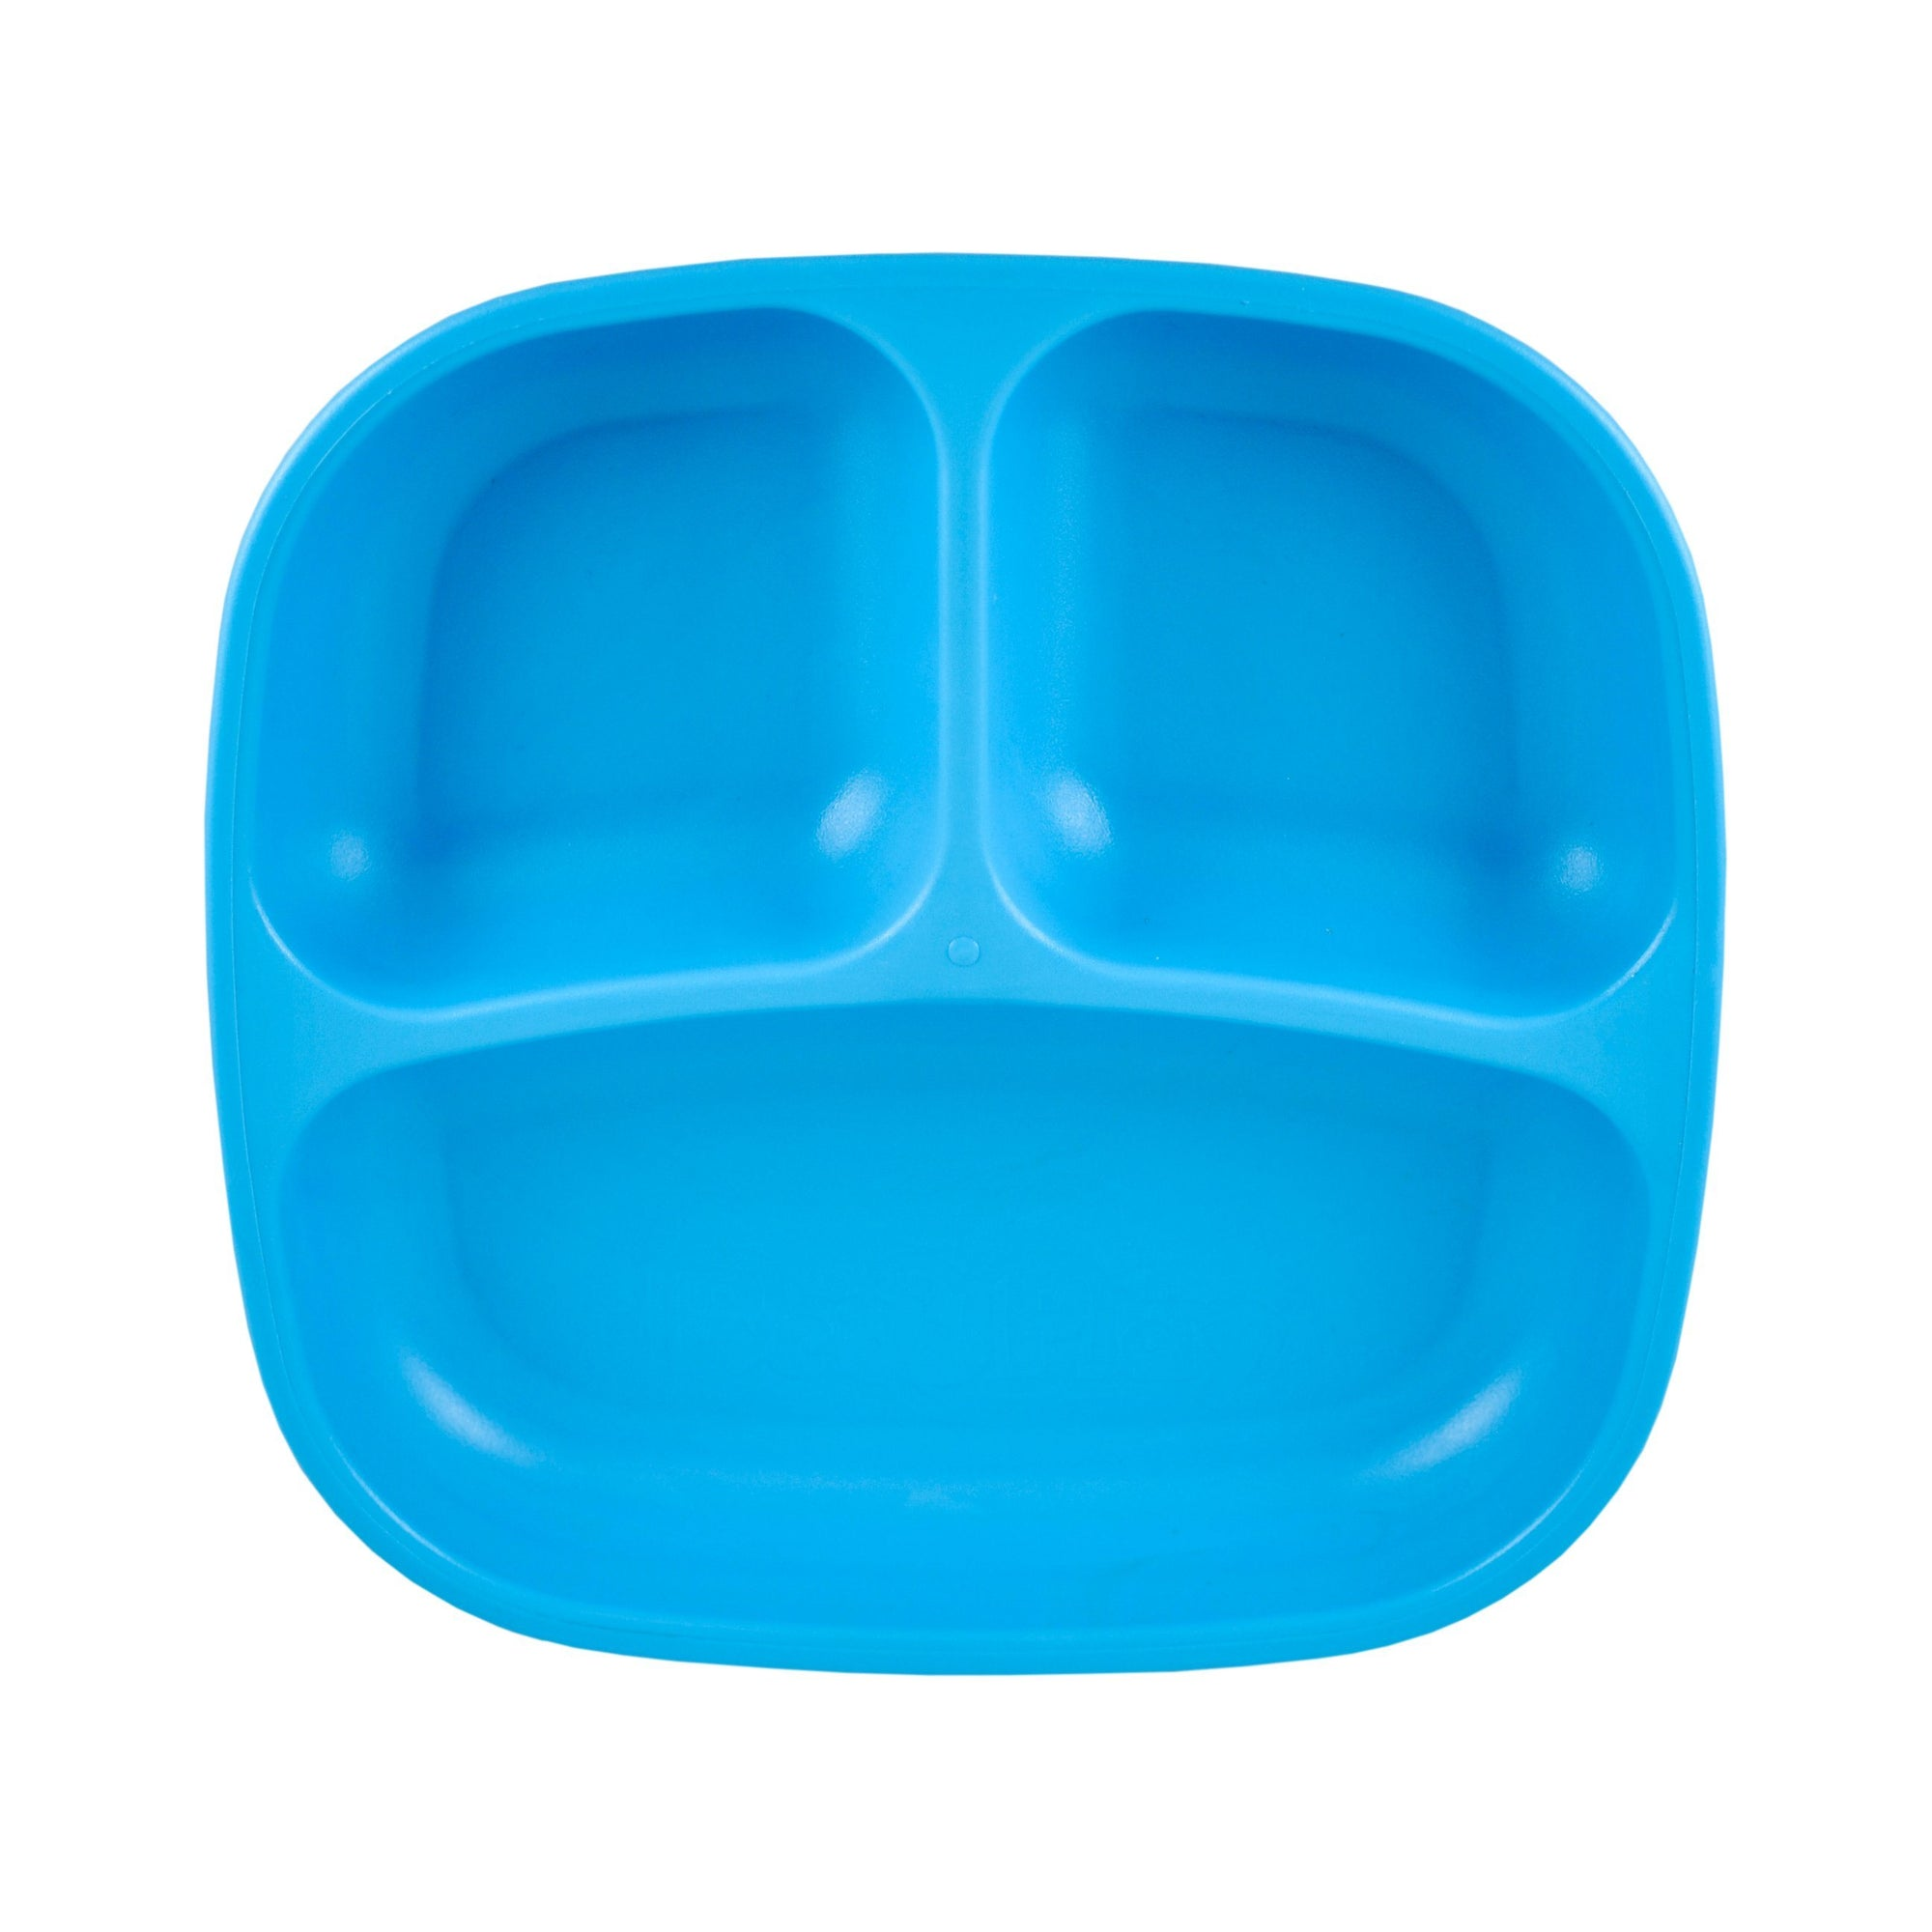 Divided Plate (Sky Blue)